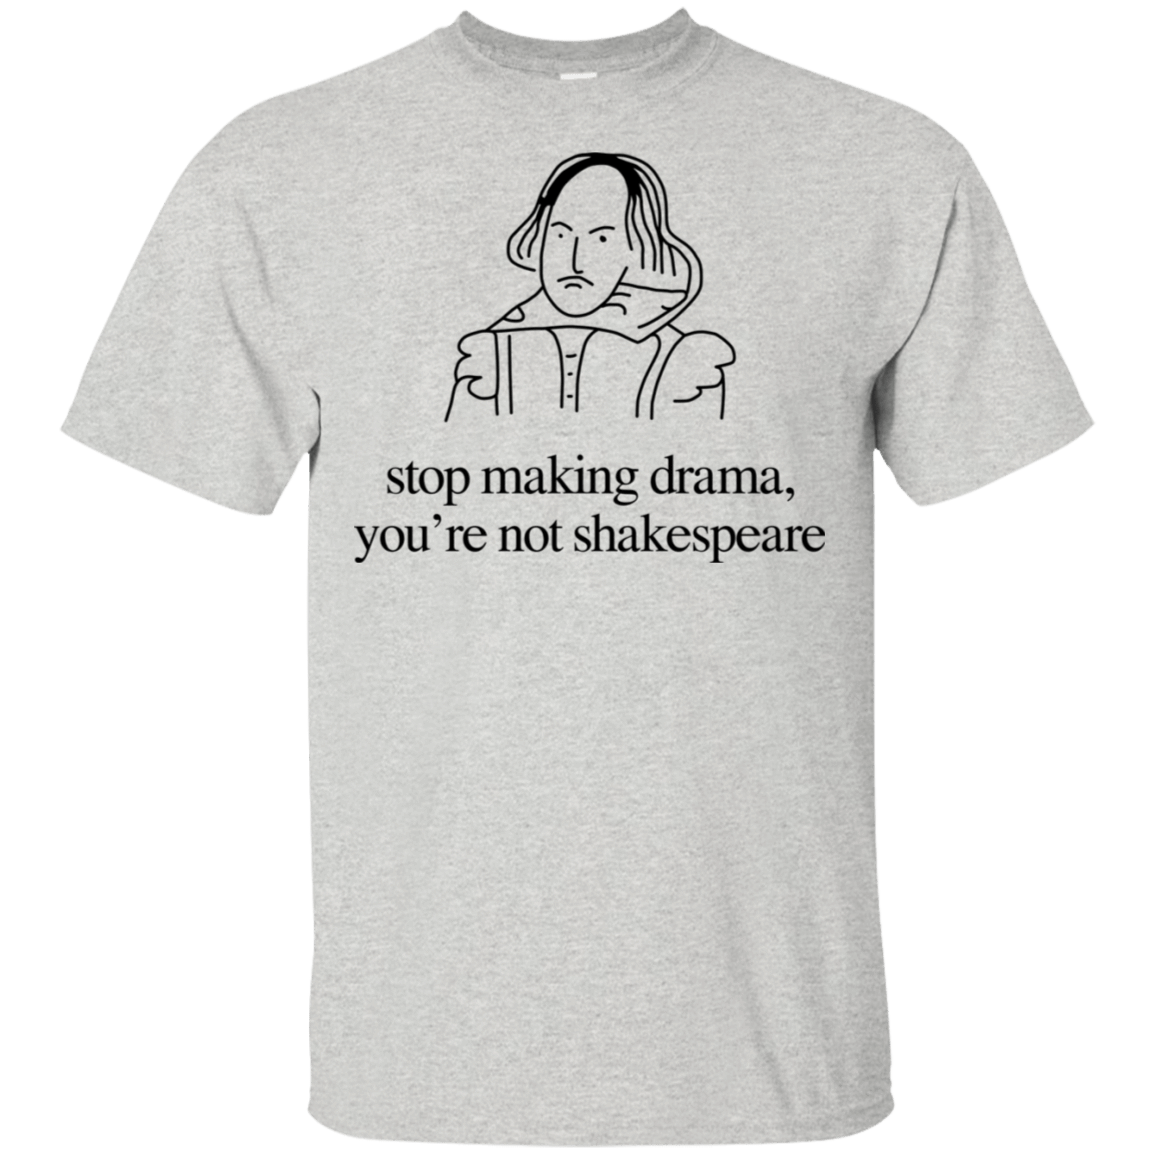 Stop Making Drama You're Not Shakespeare 22-2475-72088086-12568 - Tee Ript